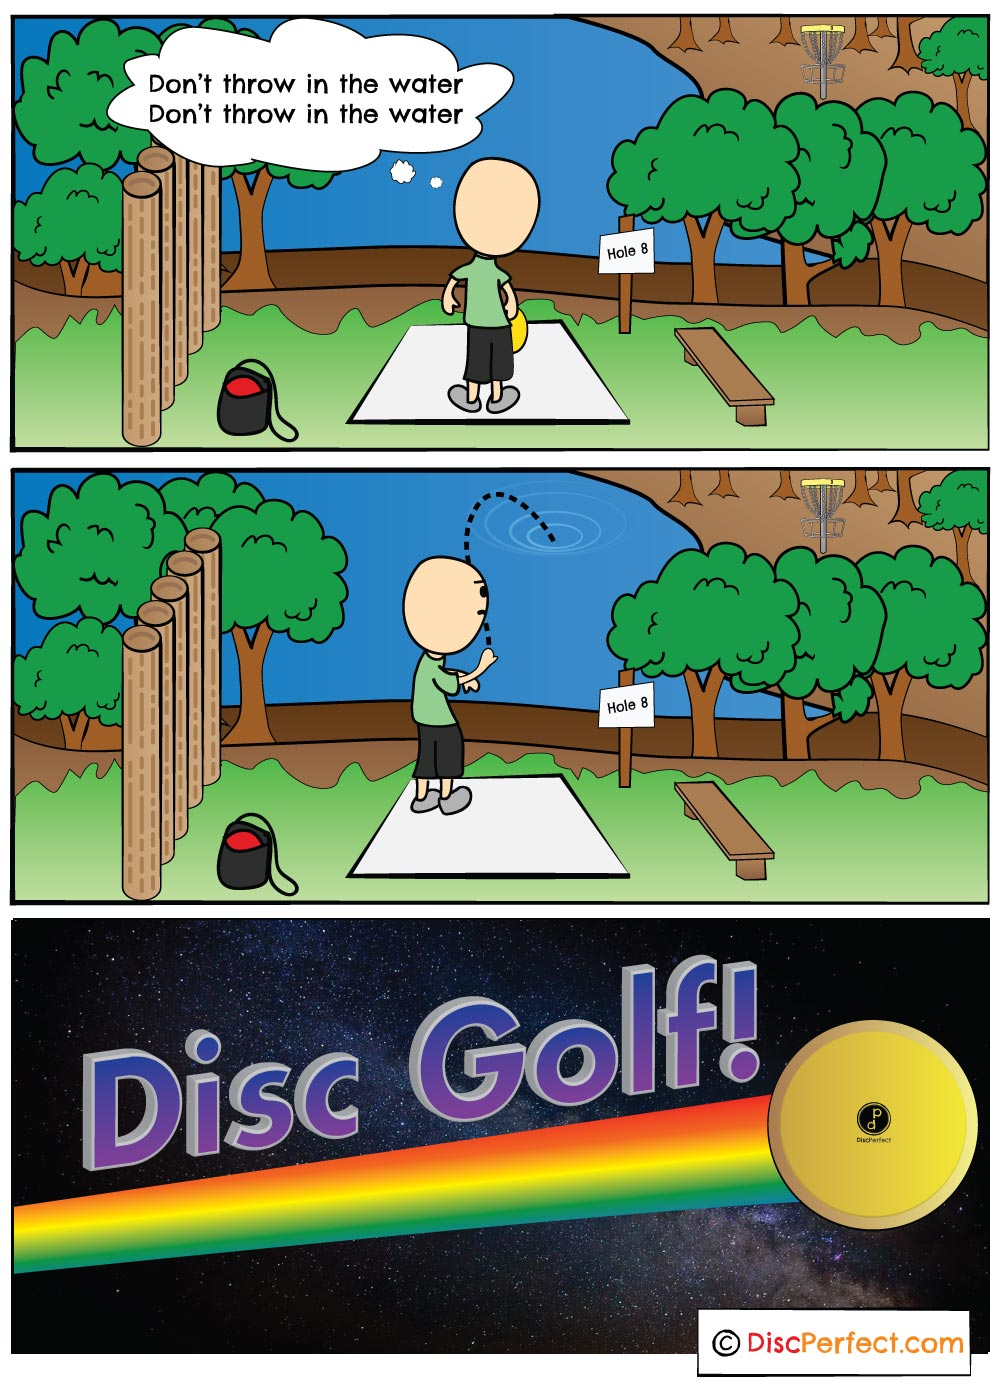 Disc Golf is very much a mental game and not following through can sometimes result in a lost disc or quick swim.